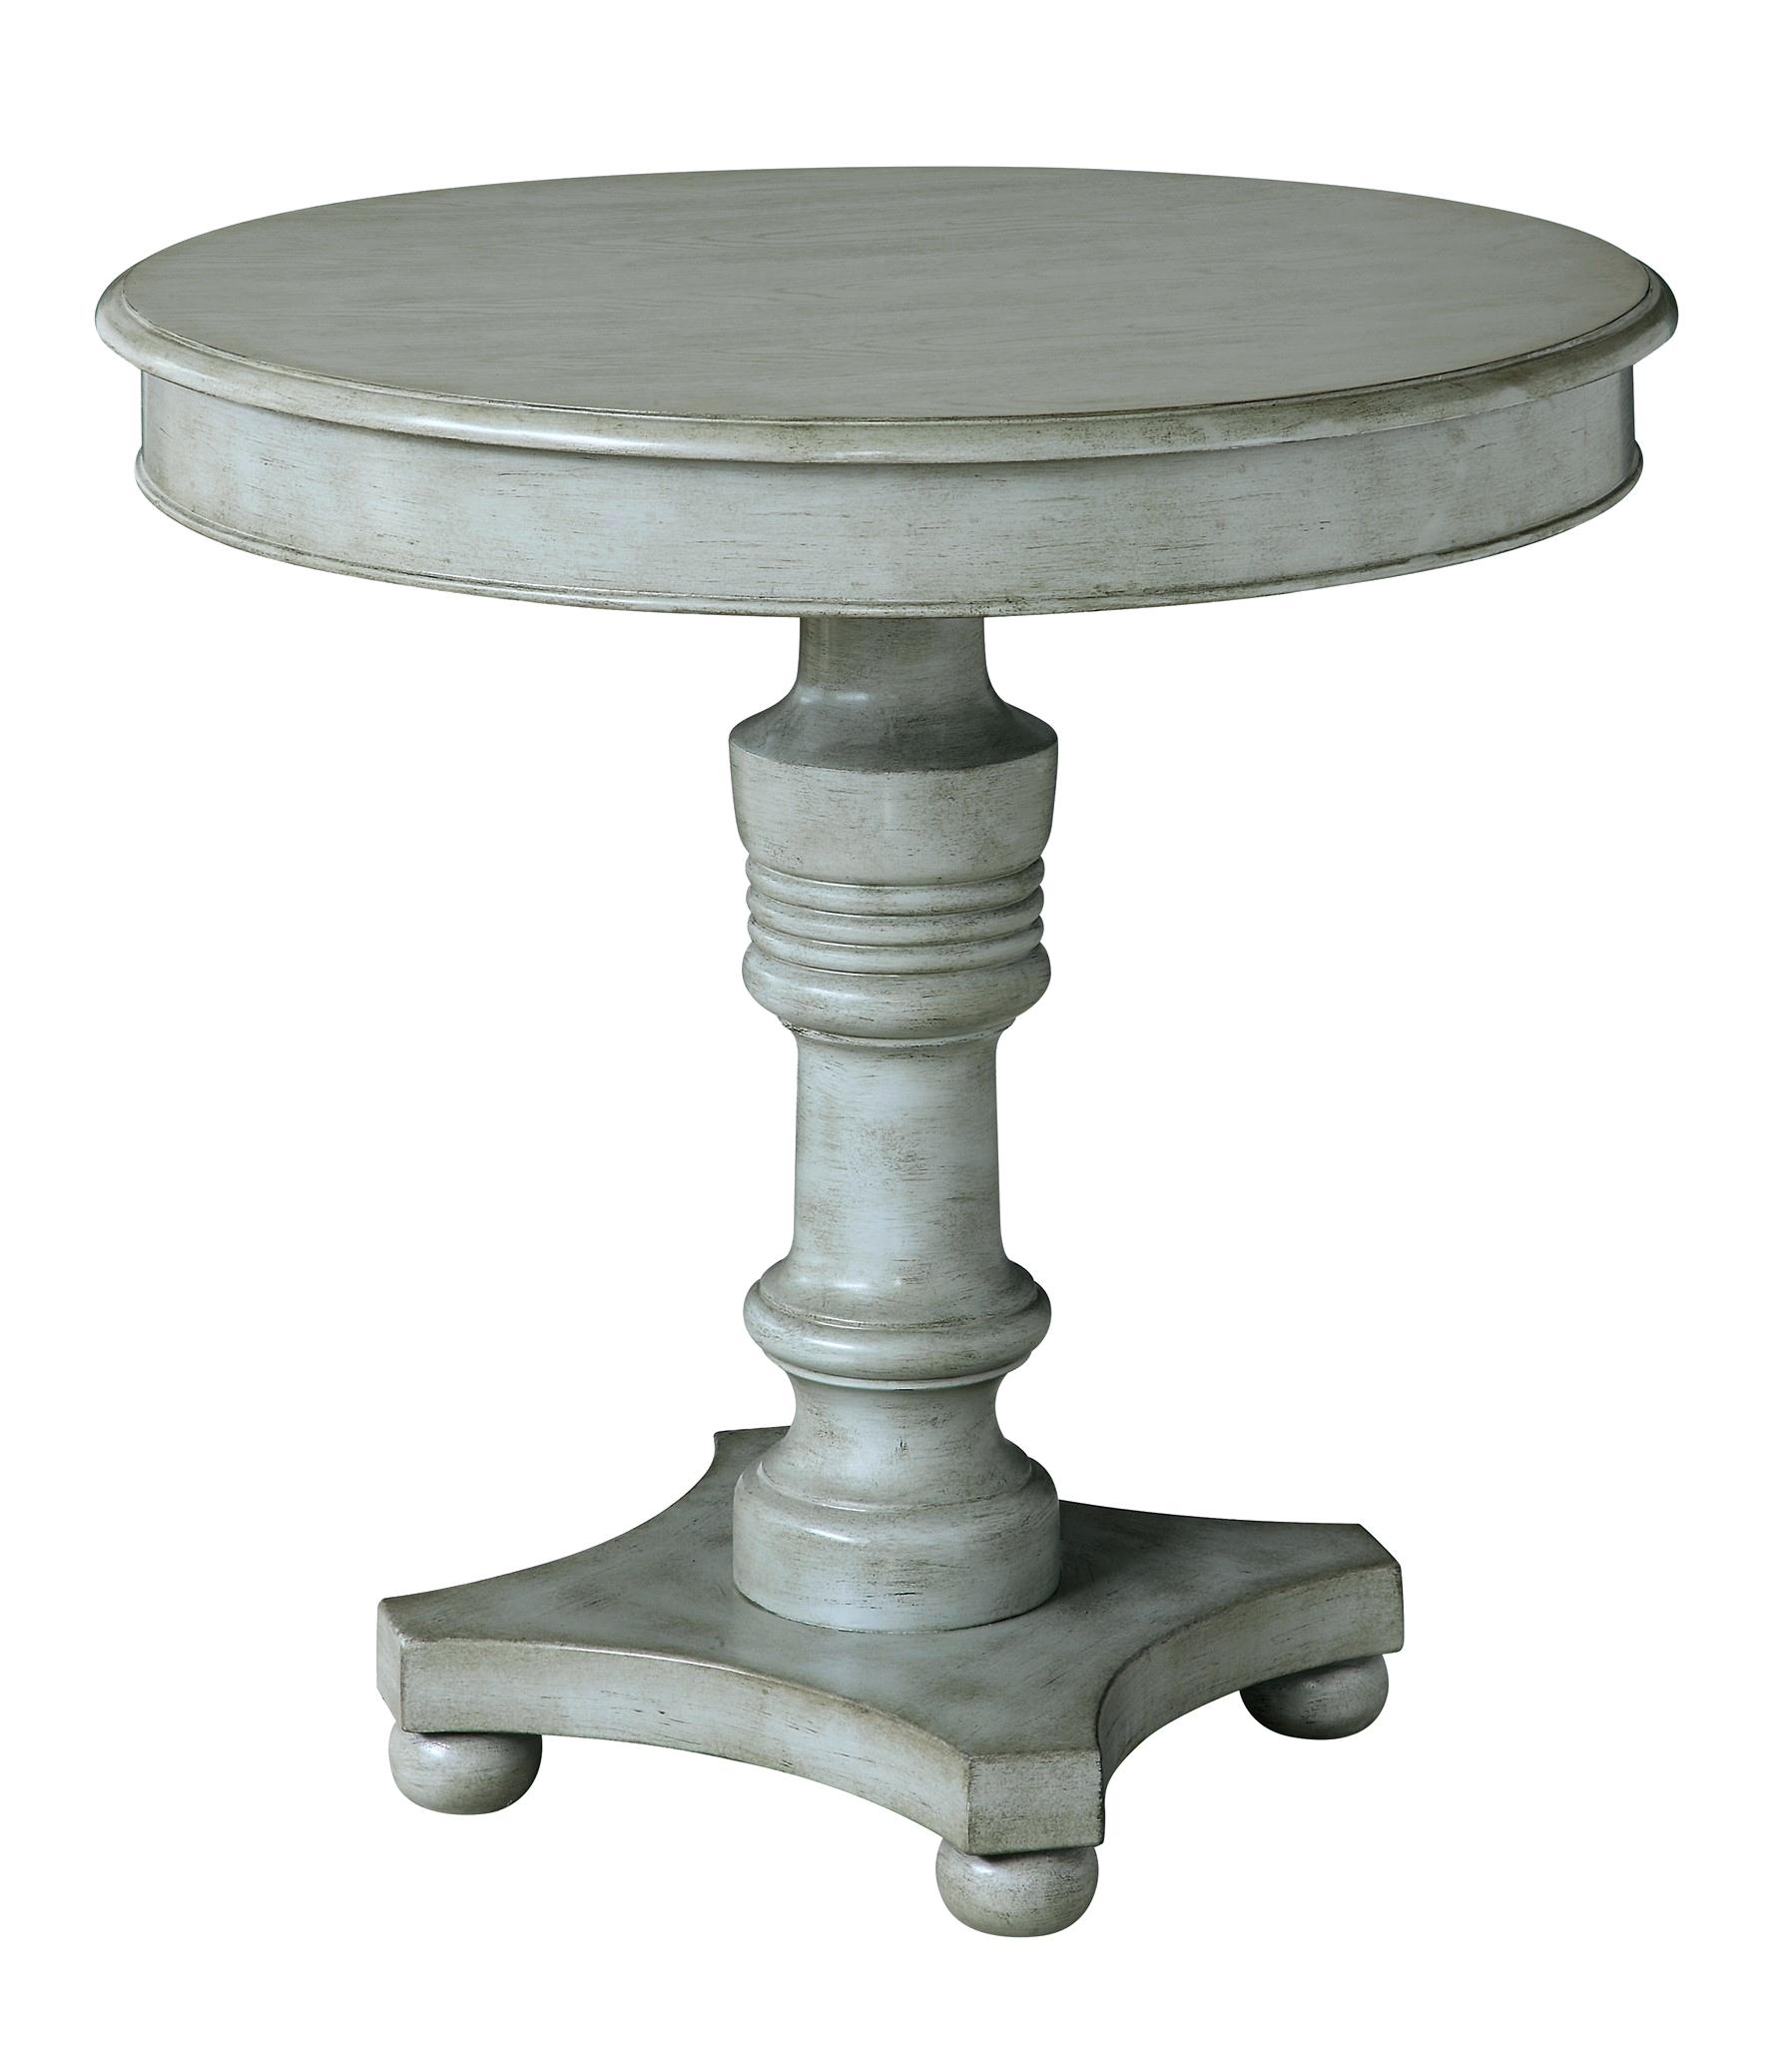 gray accent table grey night stands small antiqued turned post round restonic mattress covers for bedside tables mango nest painted coffee oriental ginger jar lamps fancy outdoor